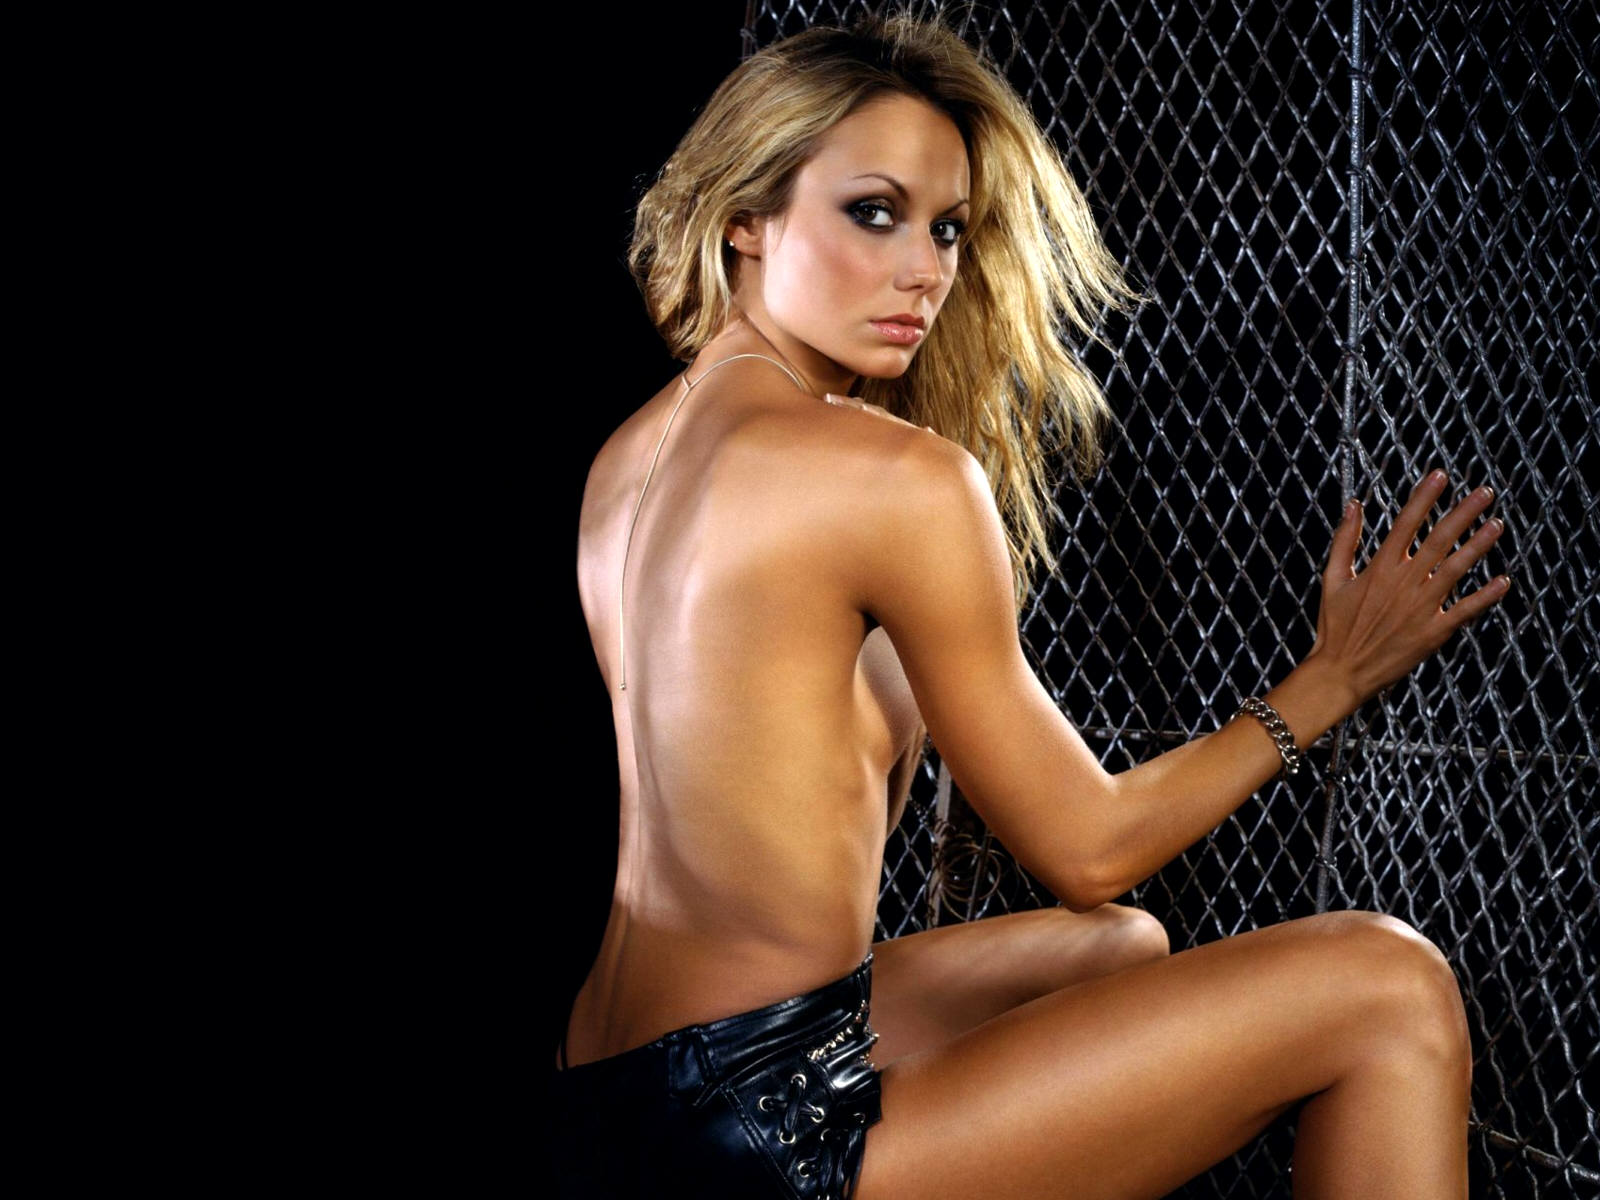 47 stacy keibler wallpapers - photo #29